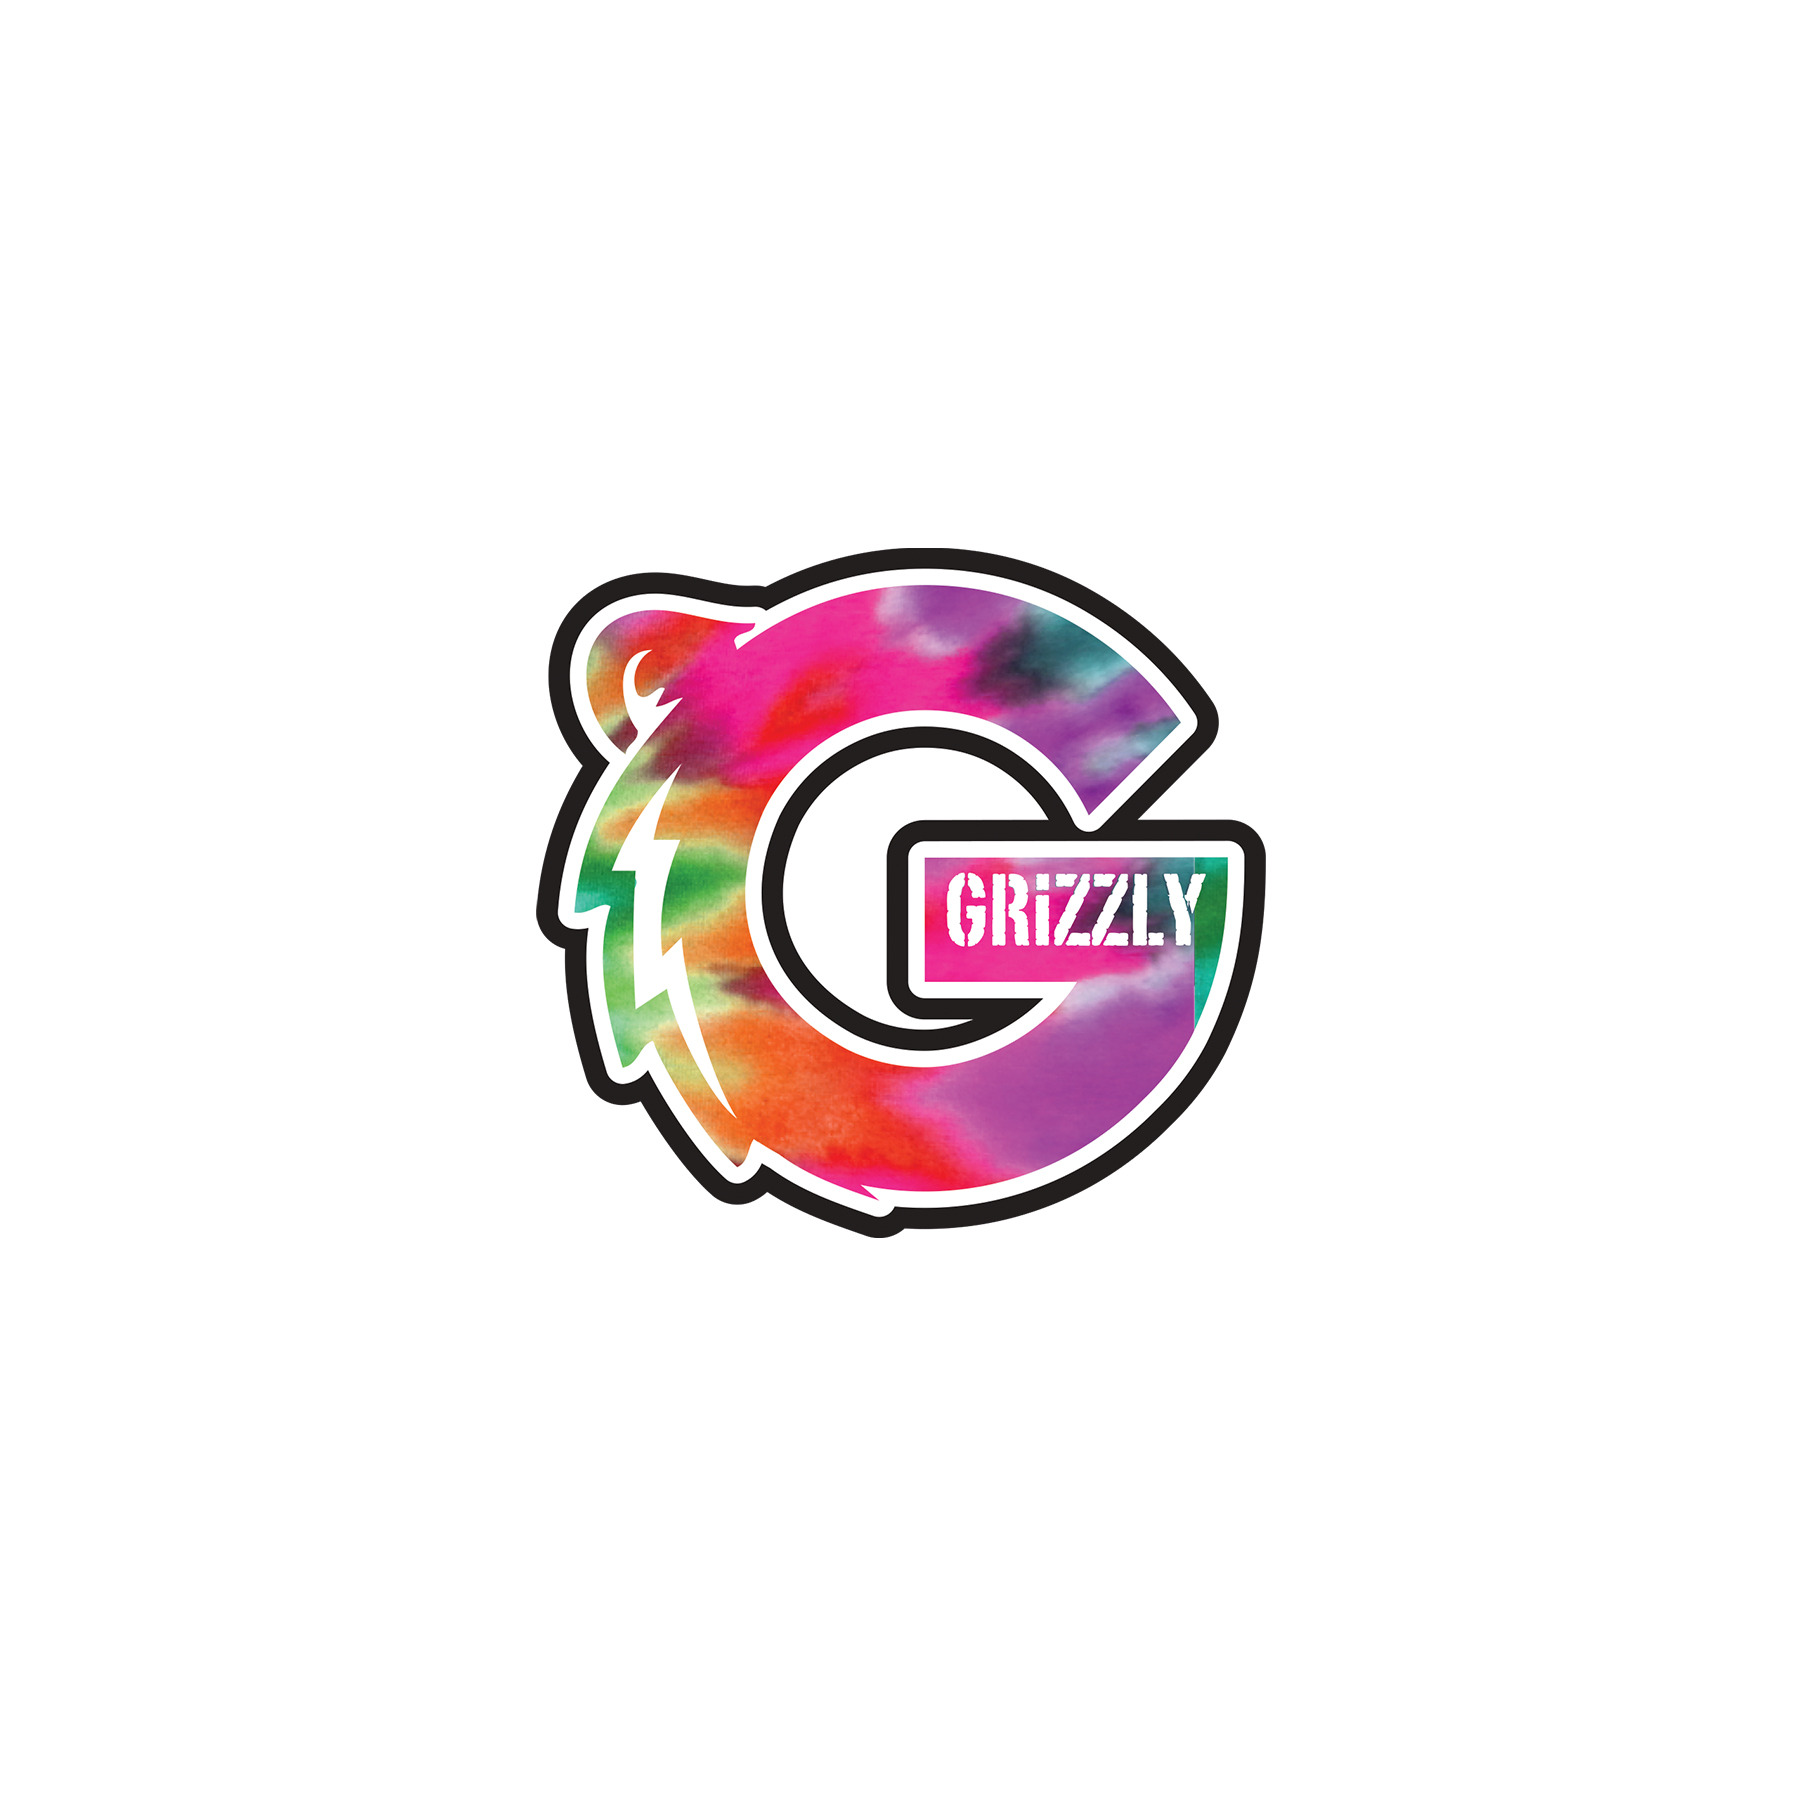 Grizzly Grip Wallpaper 1800x1800